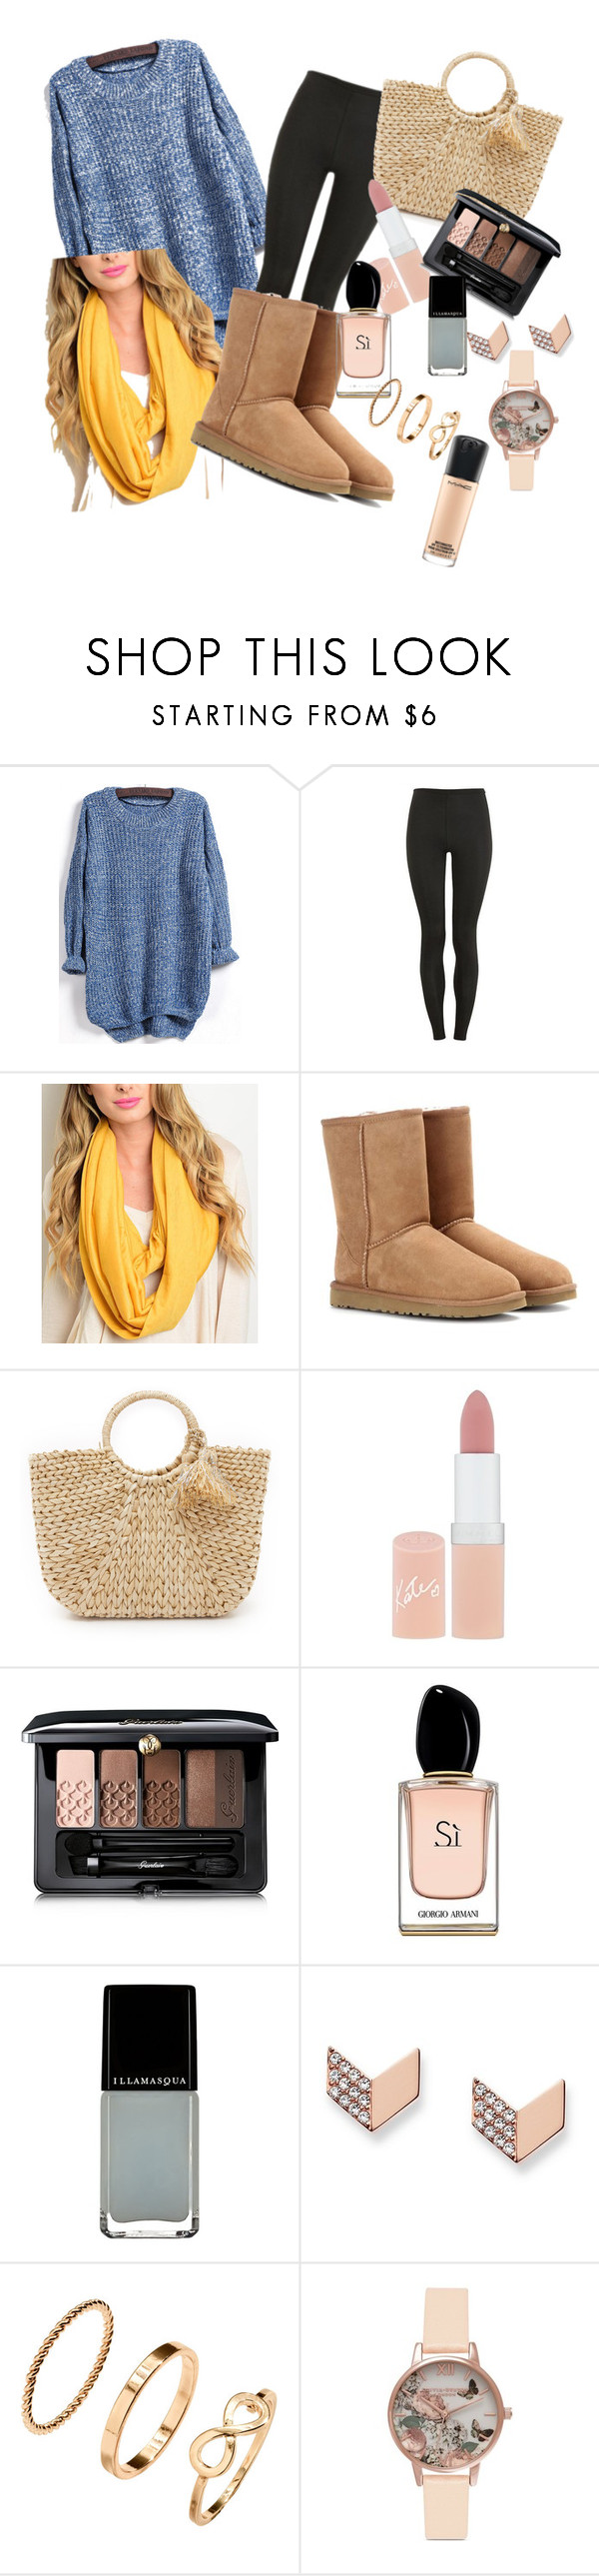 """""""Autumn"""" by ameliapeach30 ❤ liked on Polyvore featuring Proskins, Forever Lily, UGG Australia, Hat Attack, Rimmel, Guerlain, Armani Beauty, Illamasqua, FOSSIL and H&M"""